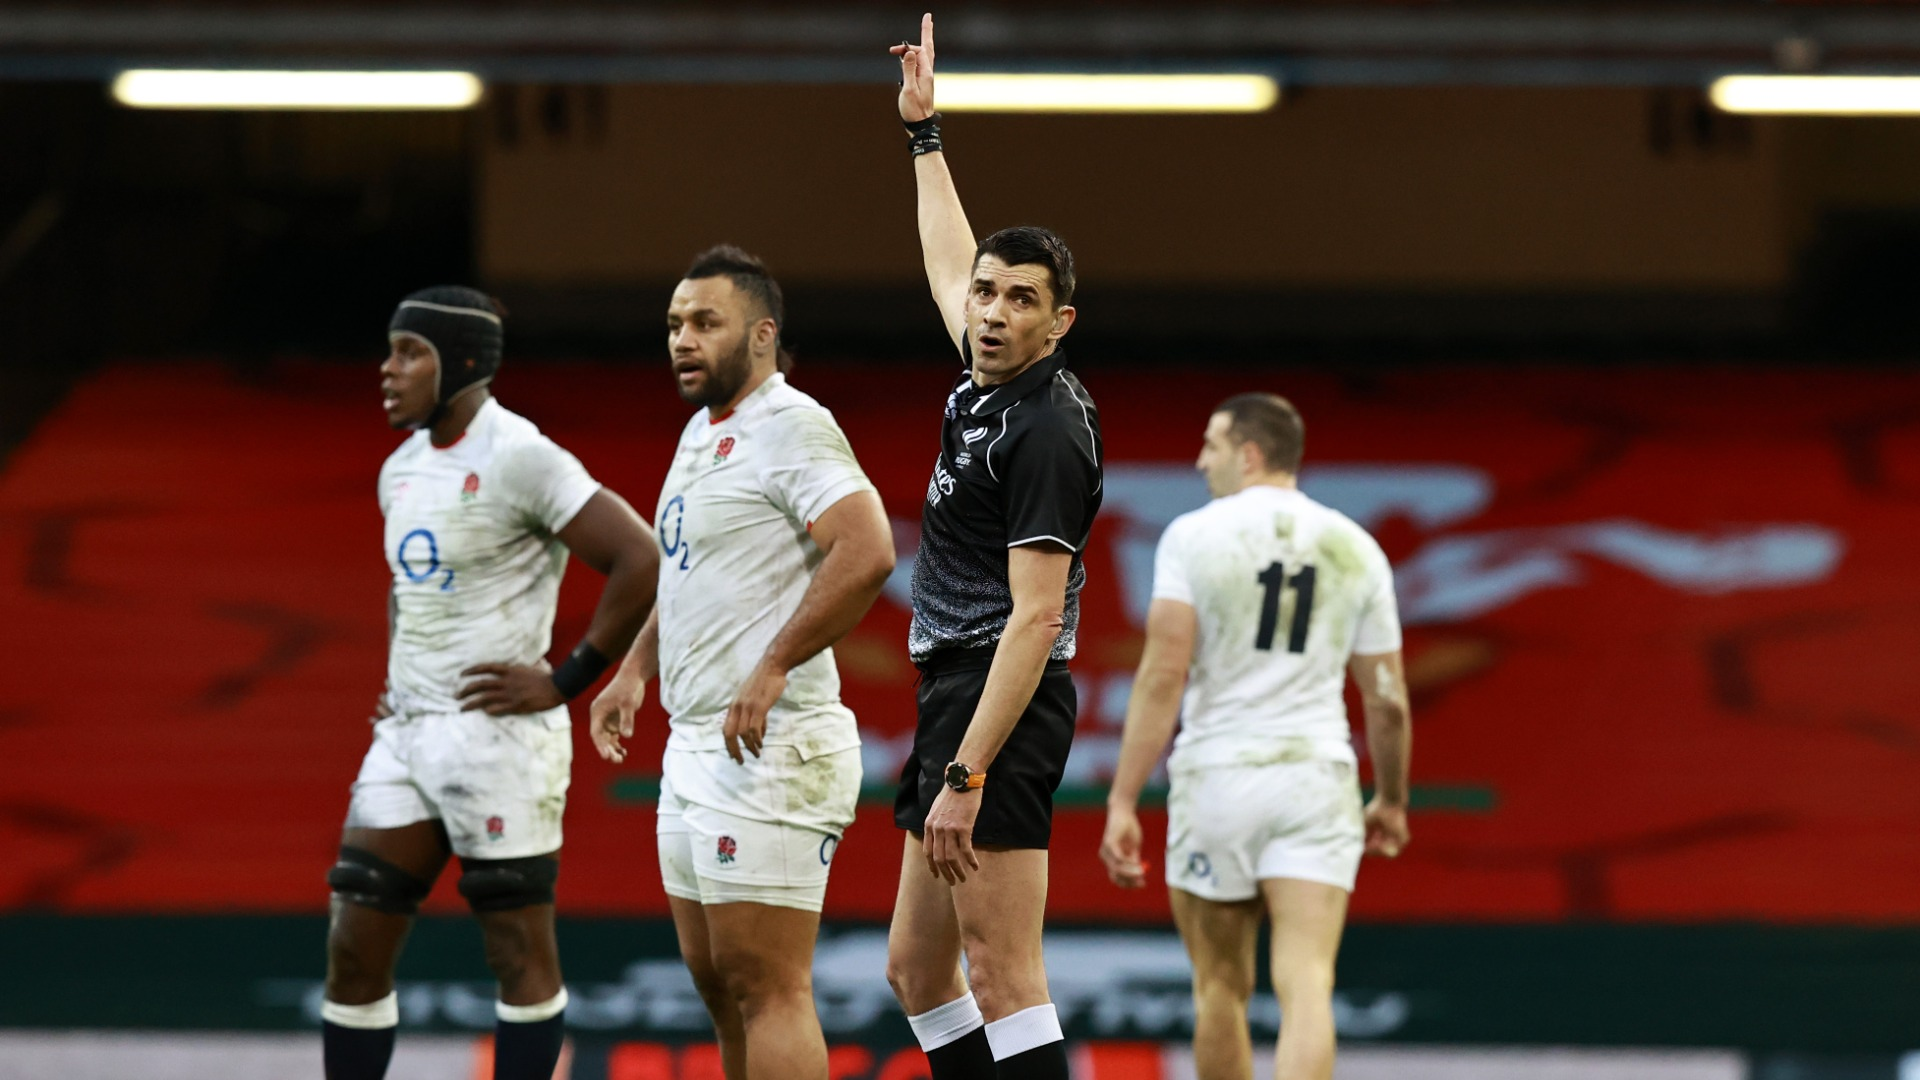 Pascal Gauzere awarded Wales two controversial first-half tries, but Eddie Jones and Owen Farrell did not vent their fury at the referee.